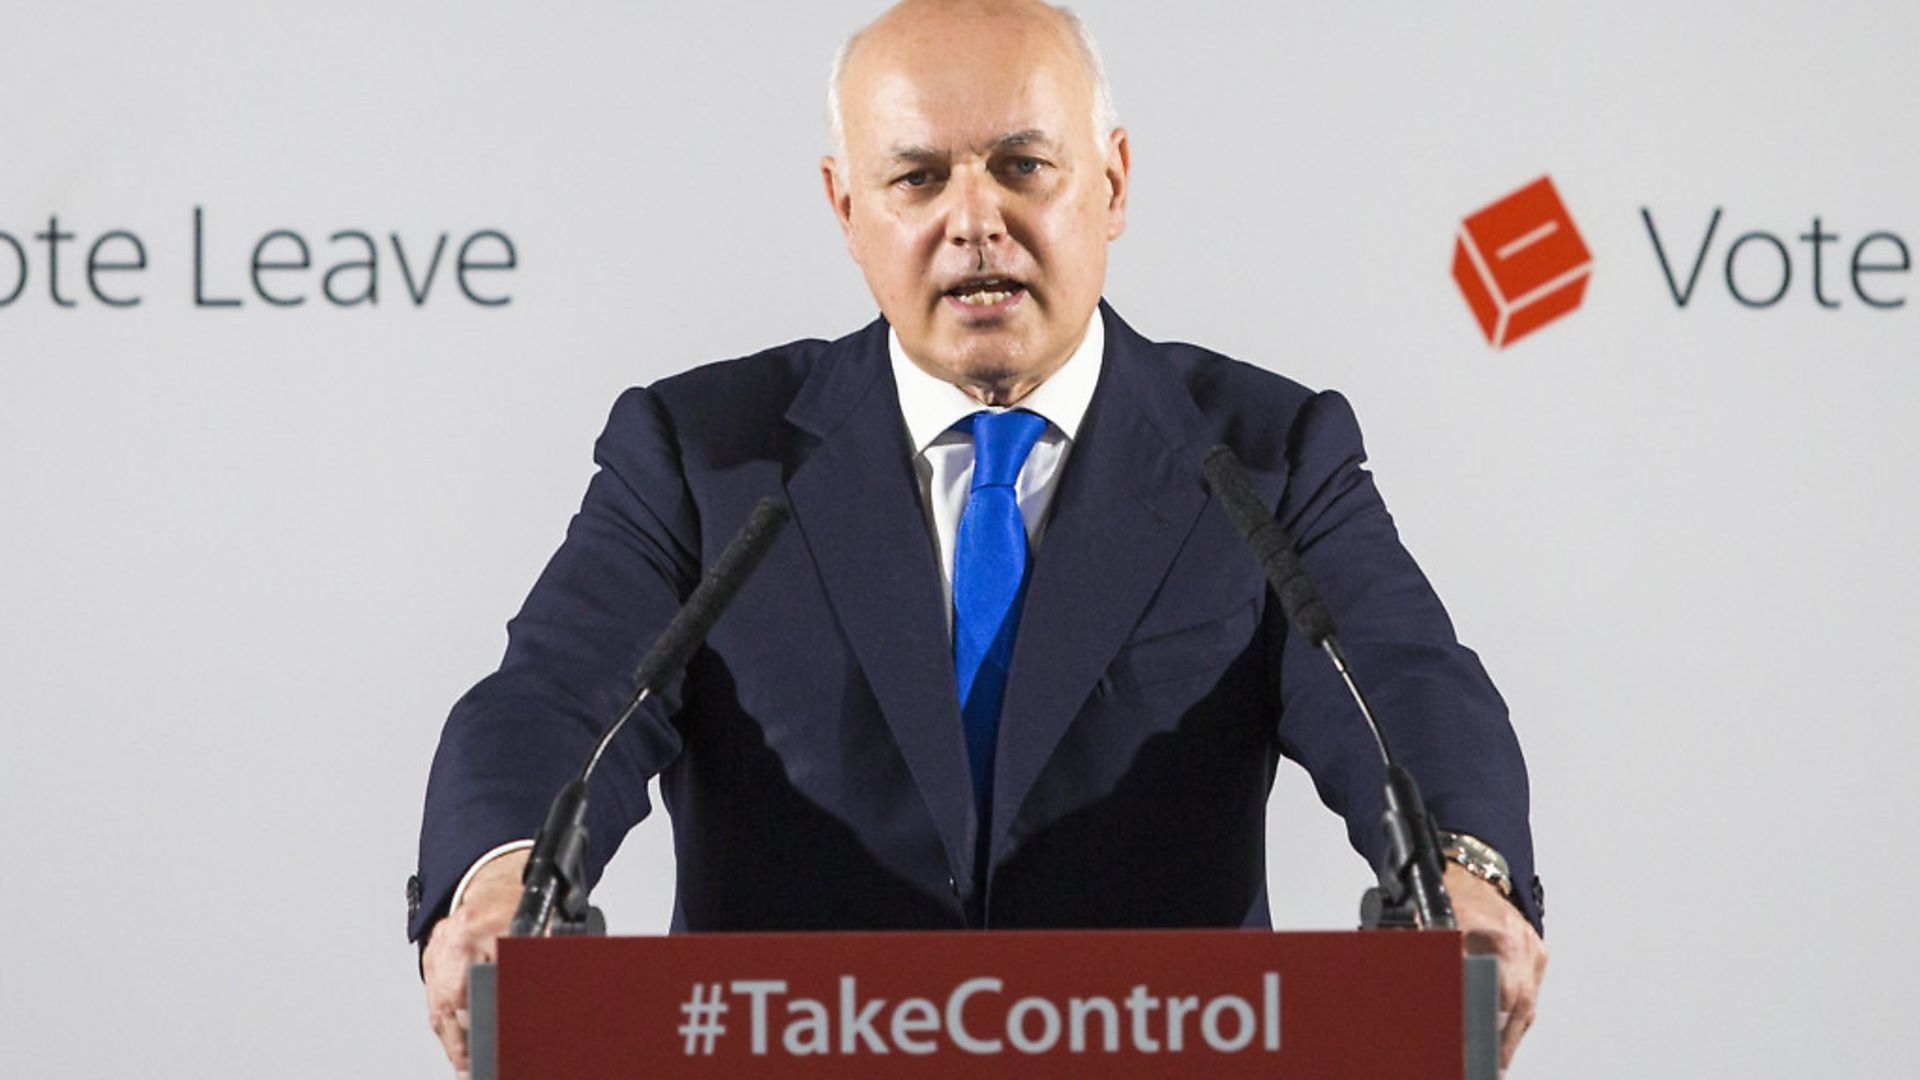 Brexiteer Iain Duncan Smith gives a speech as part of the Vote Leave campaign during the EU referendum. (Photo by Jack Taylor/Getty Images) - Credit: Getty Images